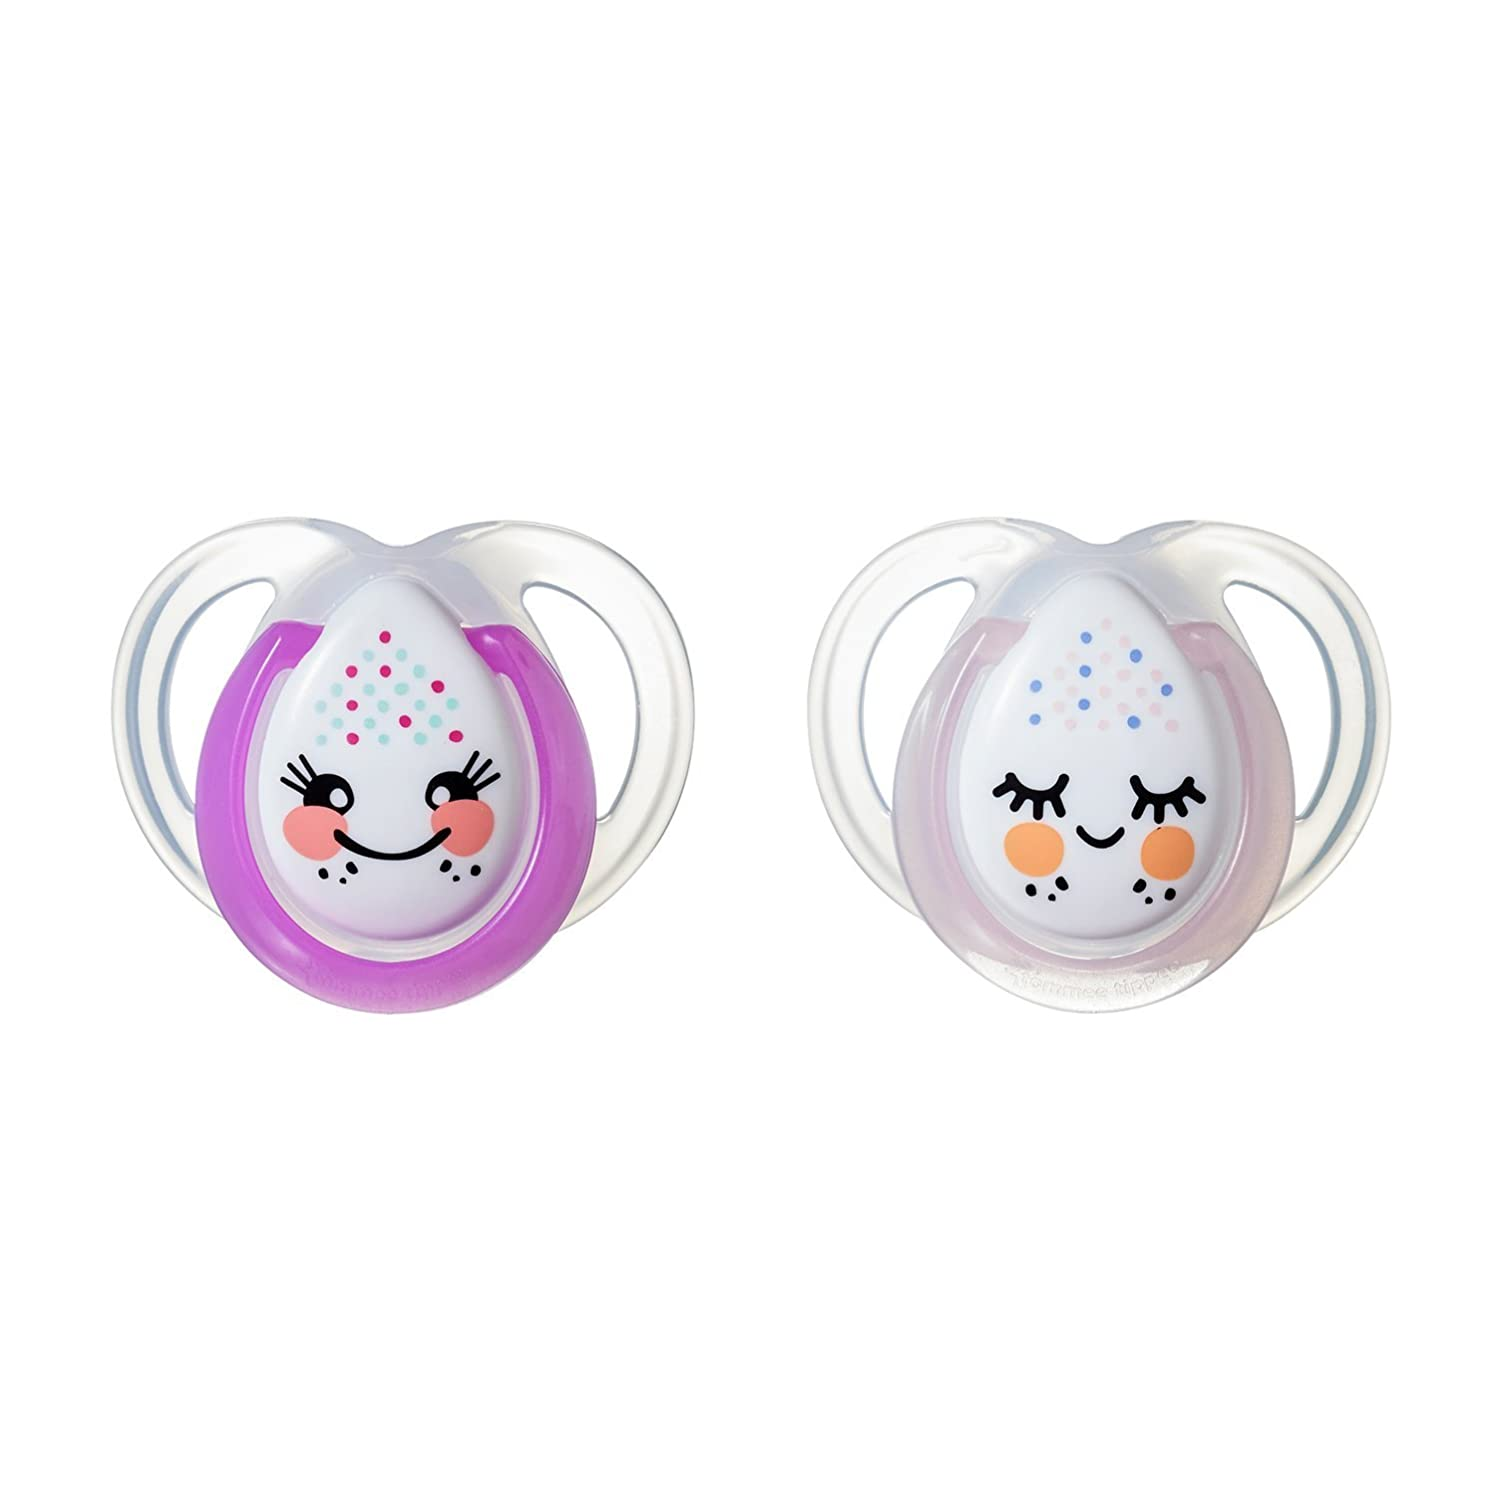 Tommee Tippee Closer to Nature Night Time Newborn Baby Pacifier, 0-6 Months - Girl, 4 Pack